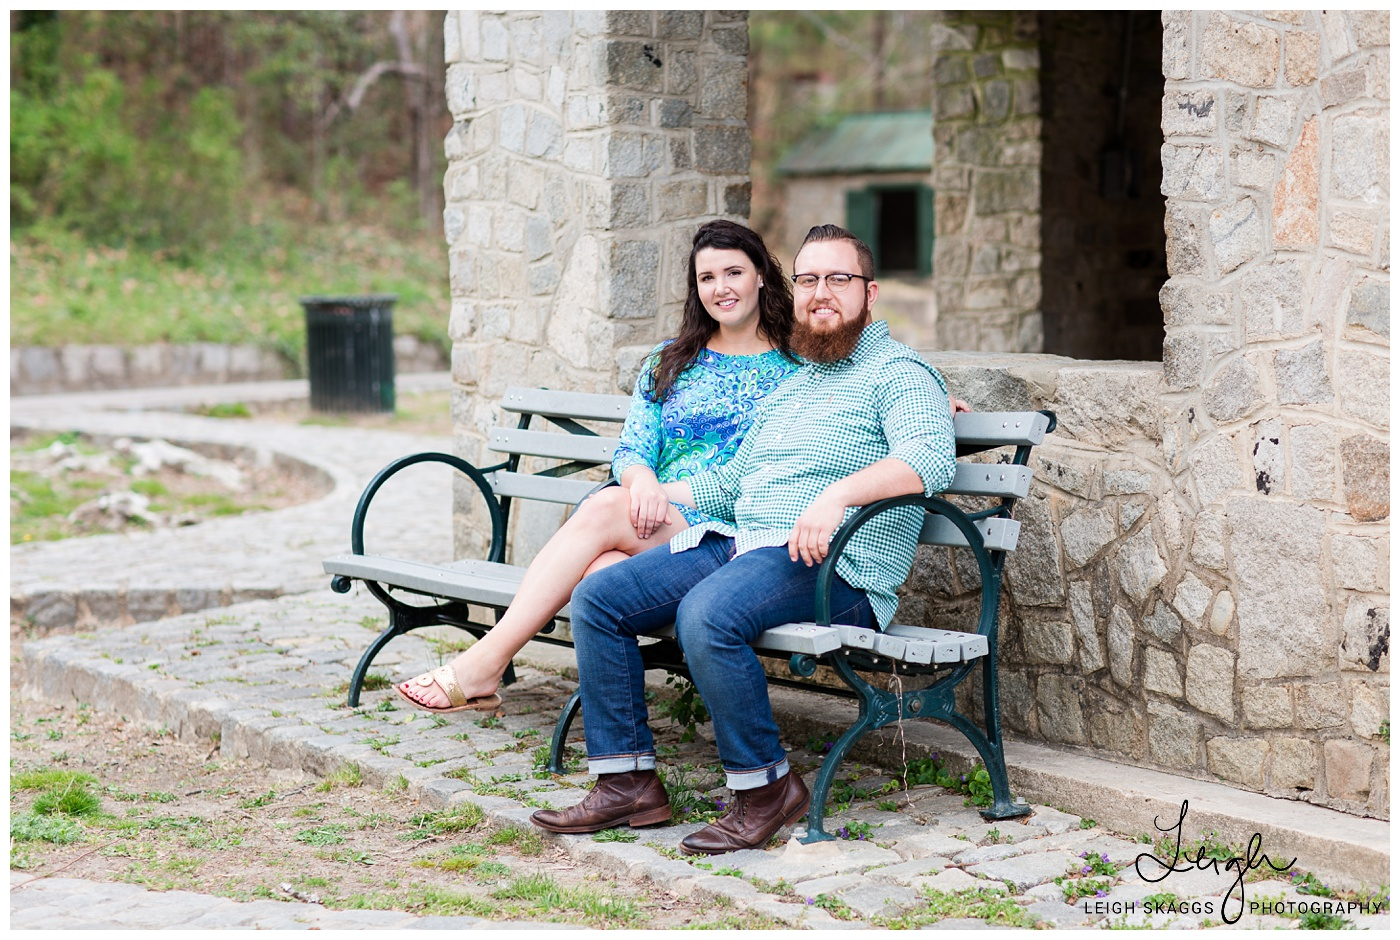 Erin & Lloyd | Forrest Hill Park Engagement session